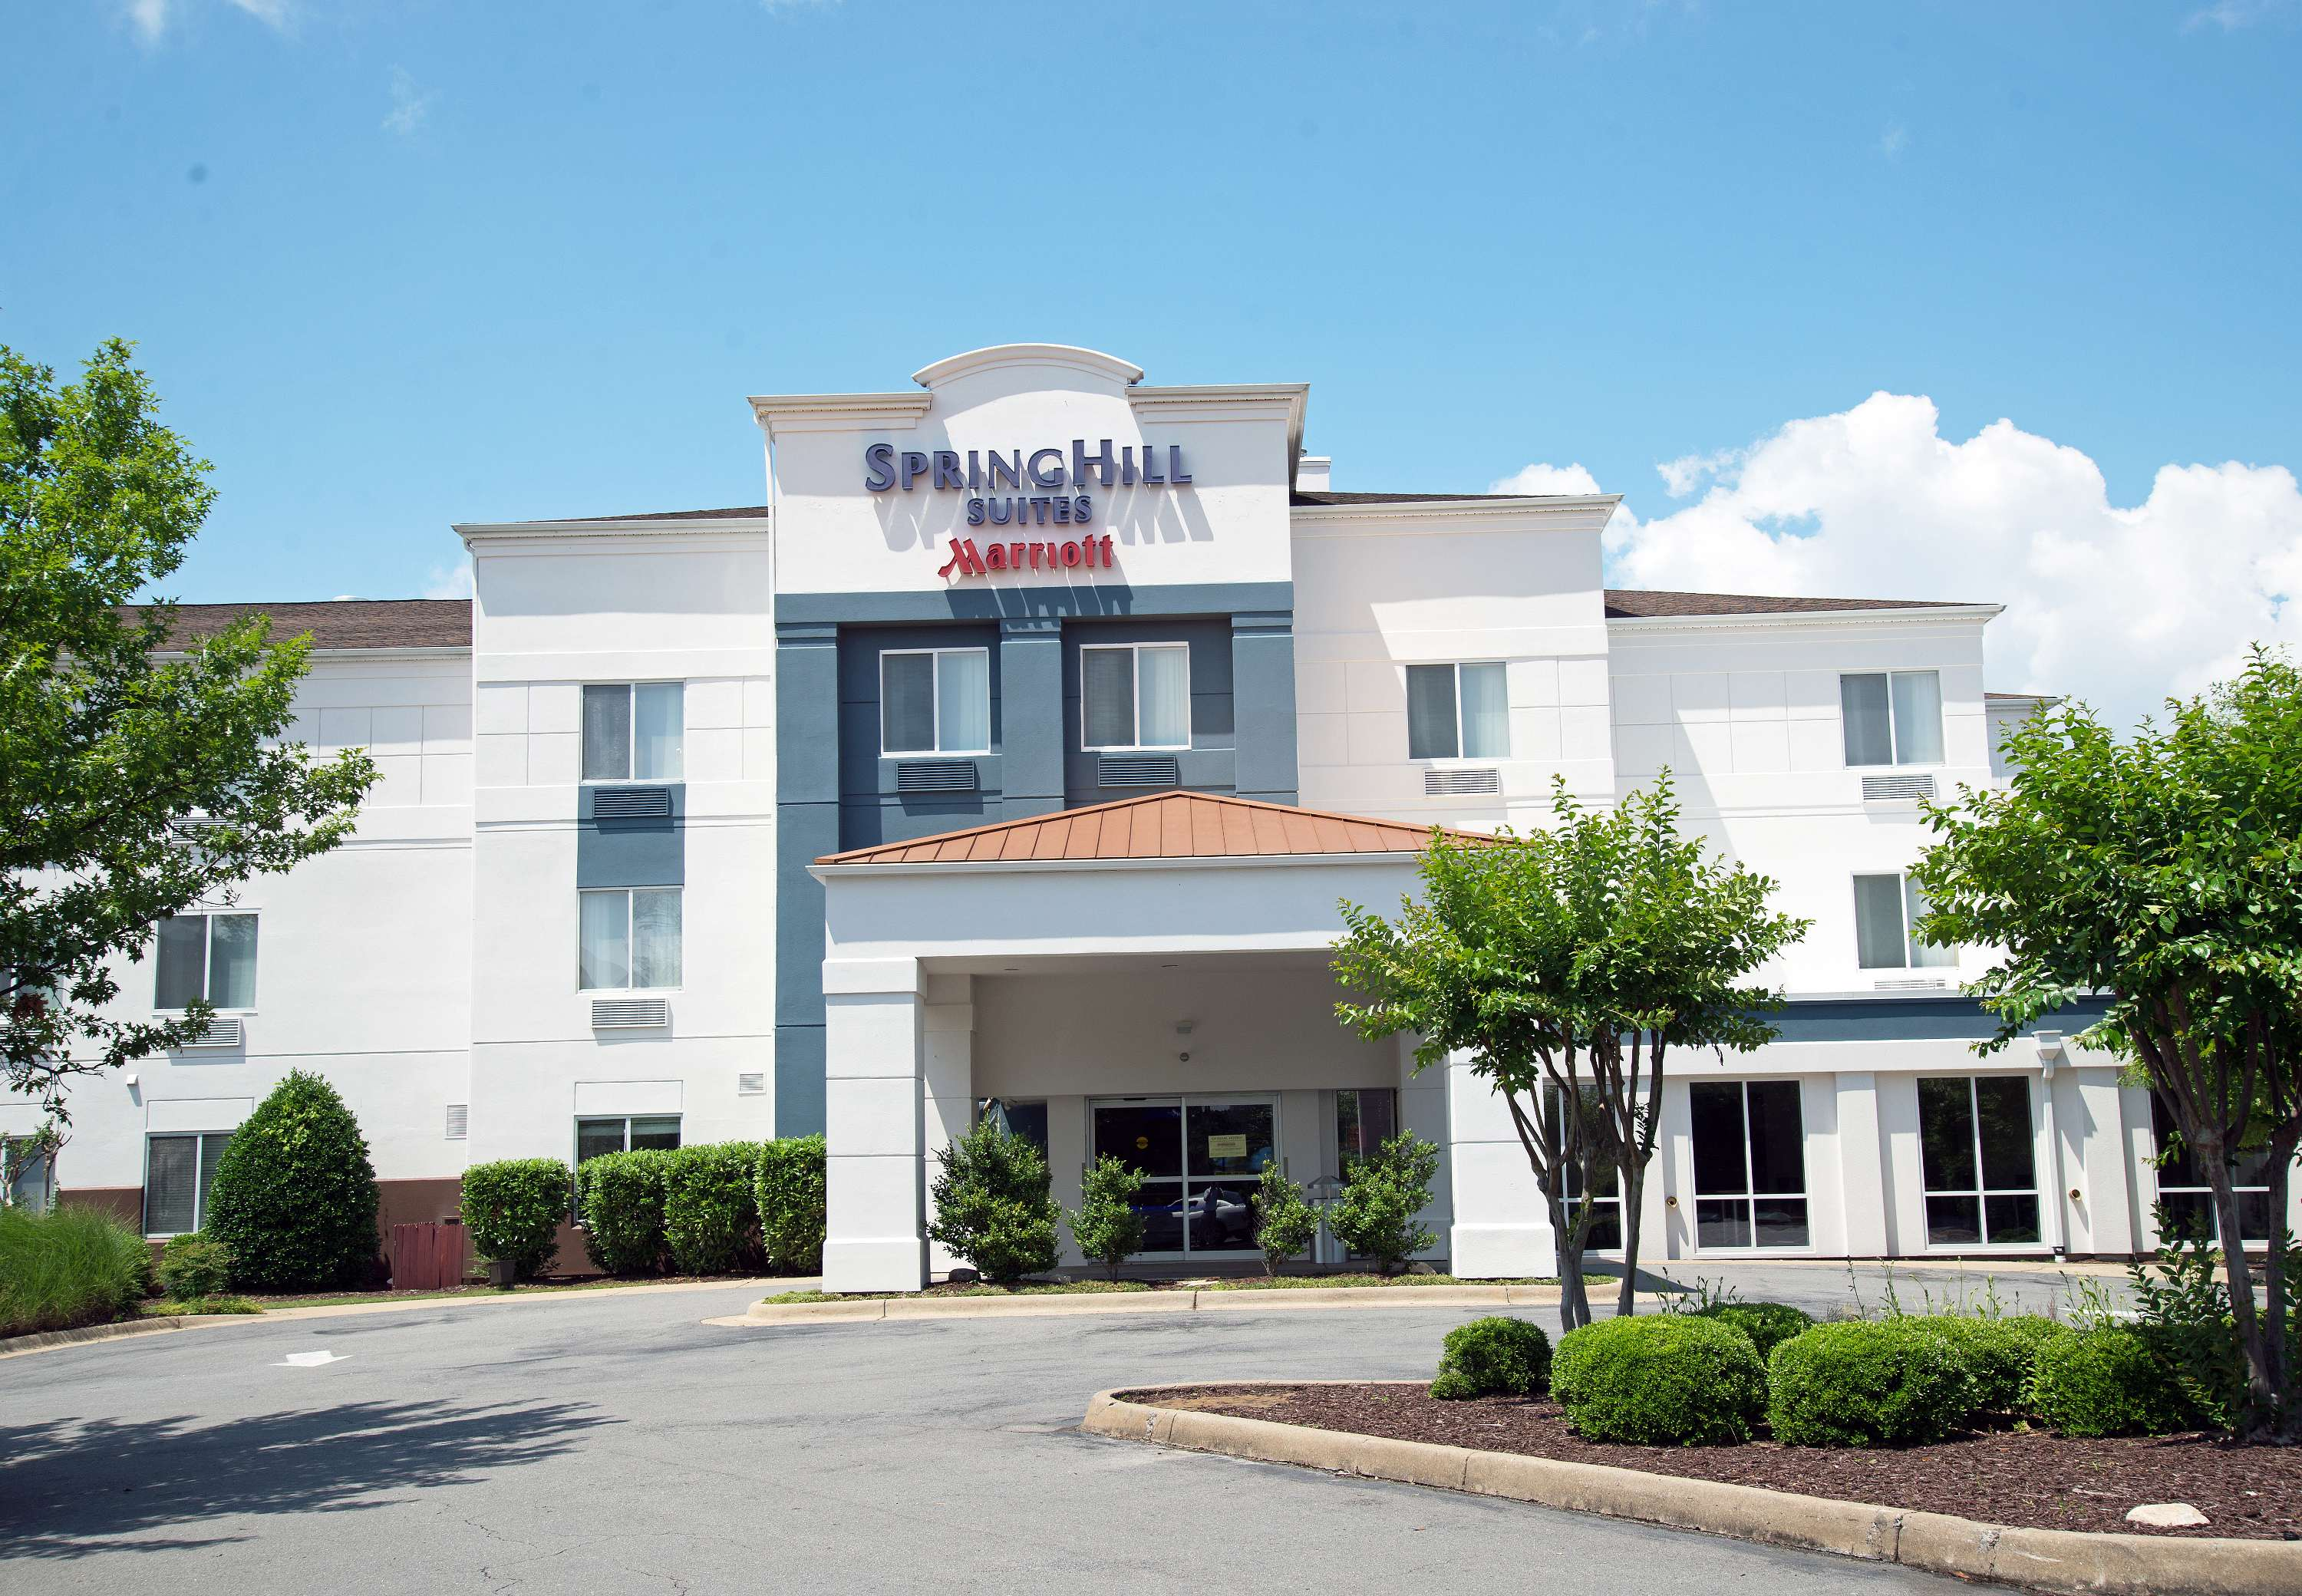 SpringHill Suites by Marriott Little Rock West image 9